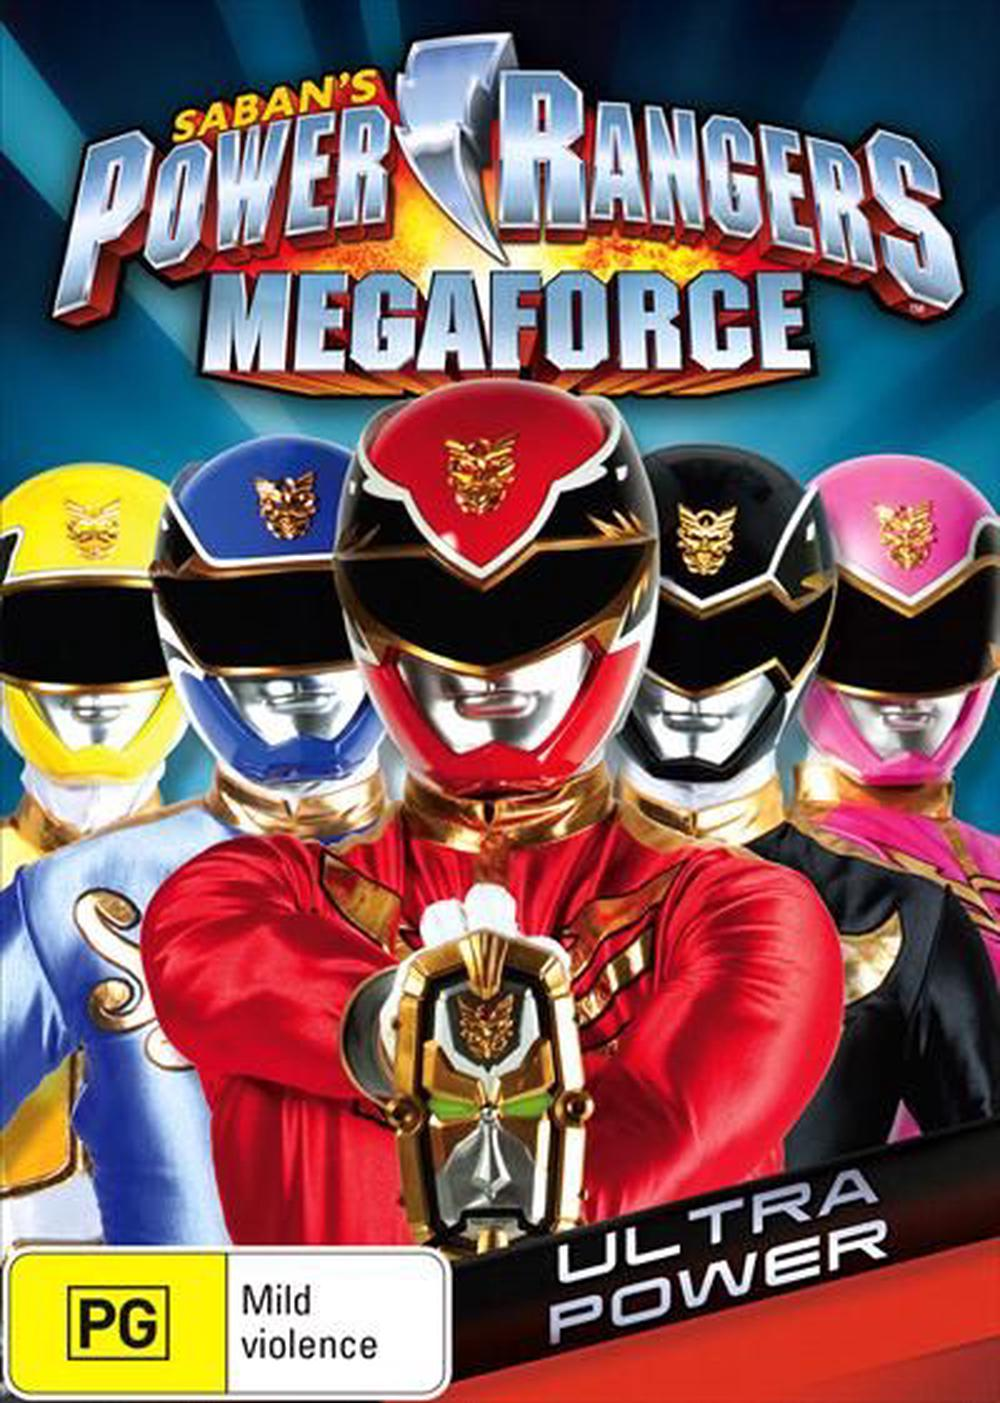 Power Rangers - Megaforce : Vol 2, DVD | Buy online at The Nile